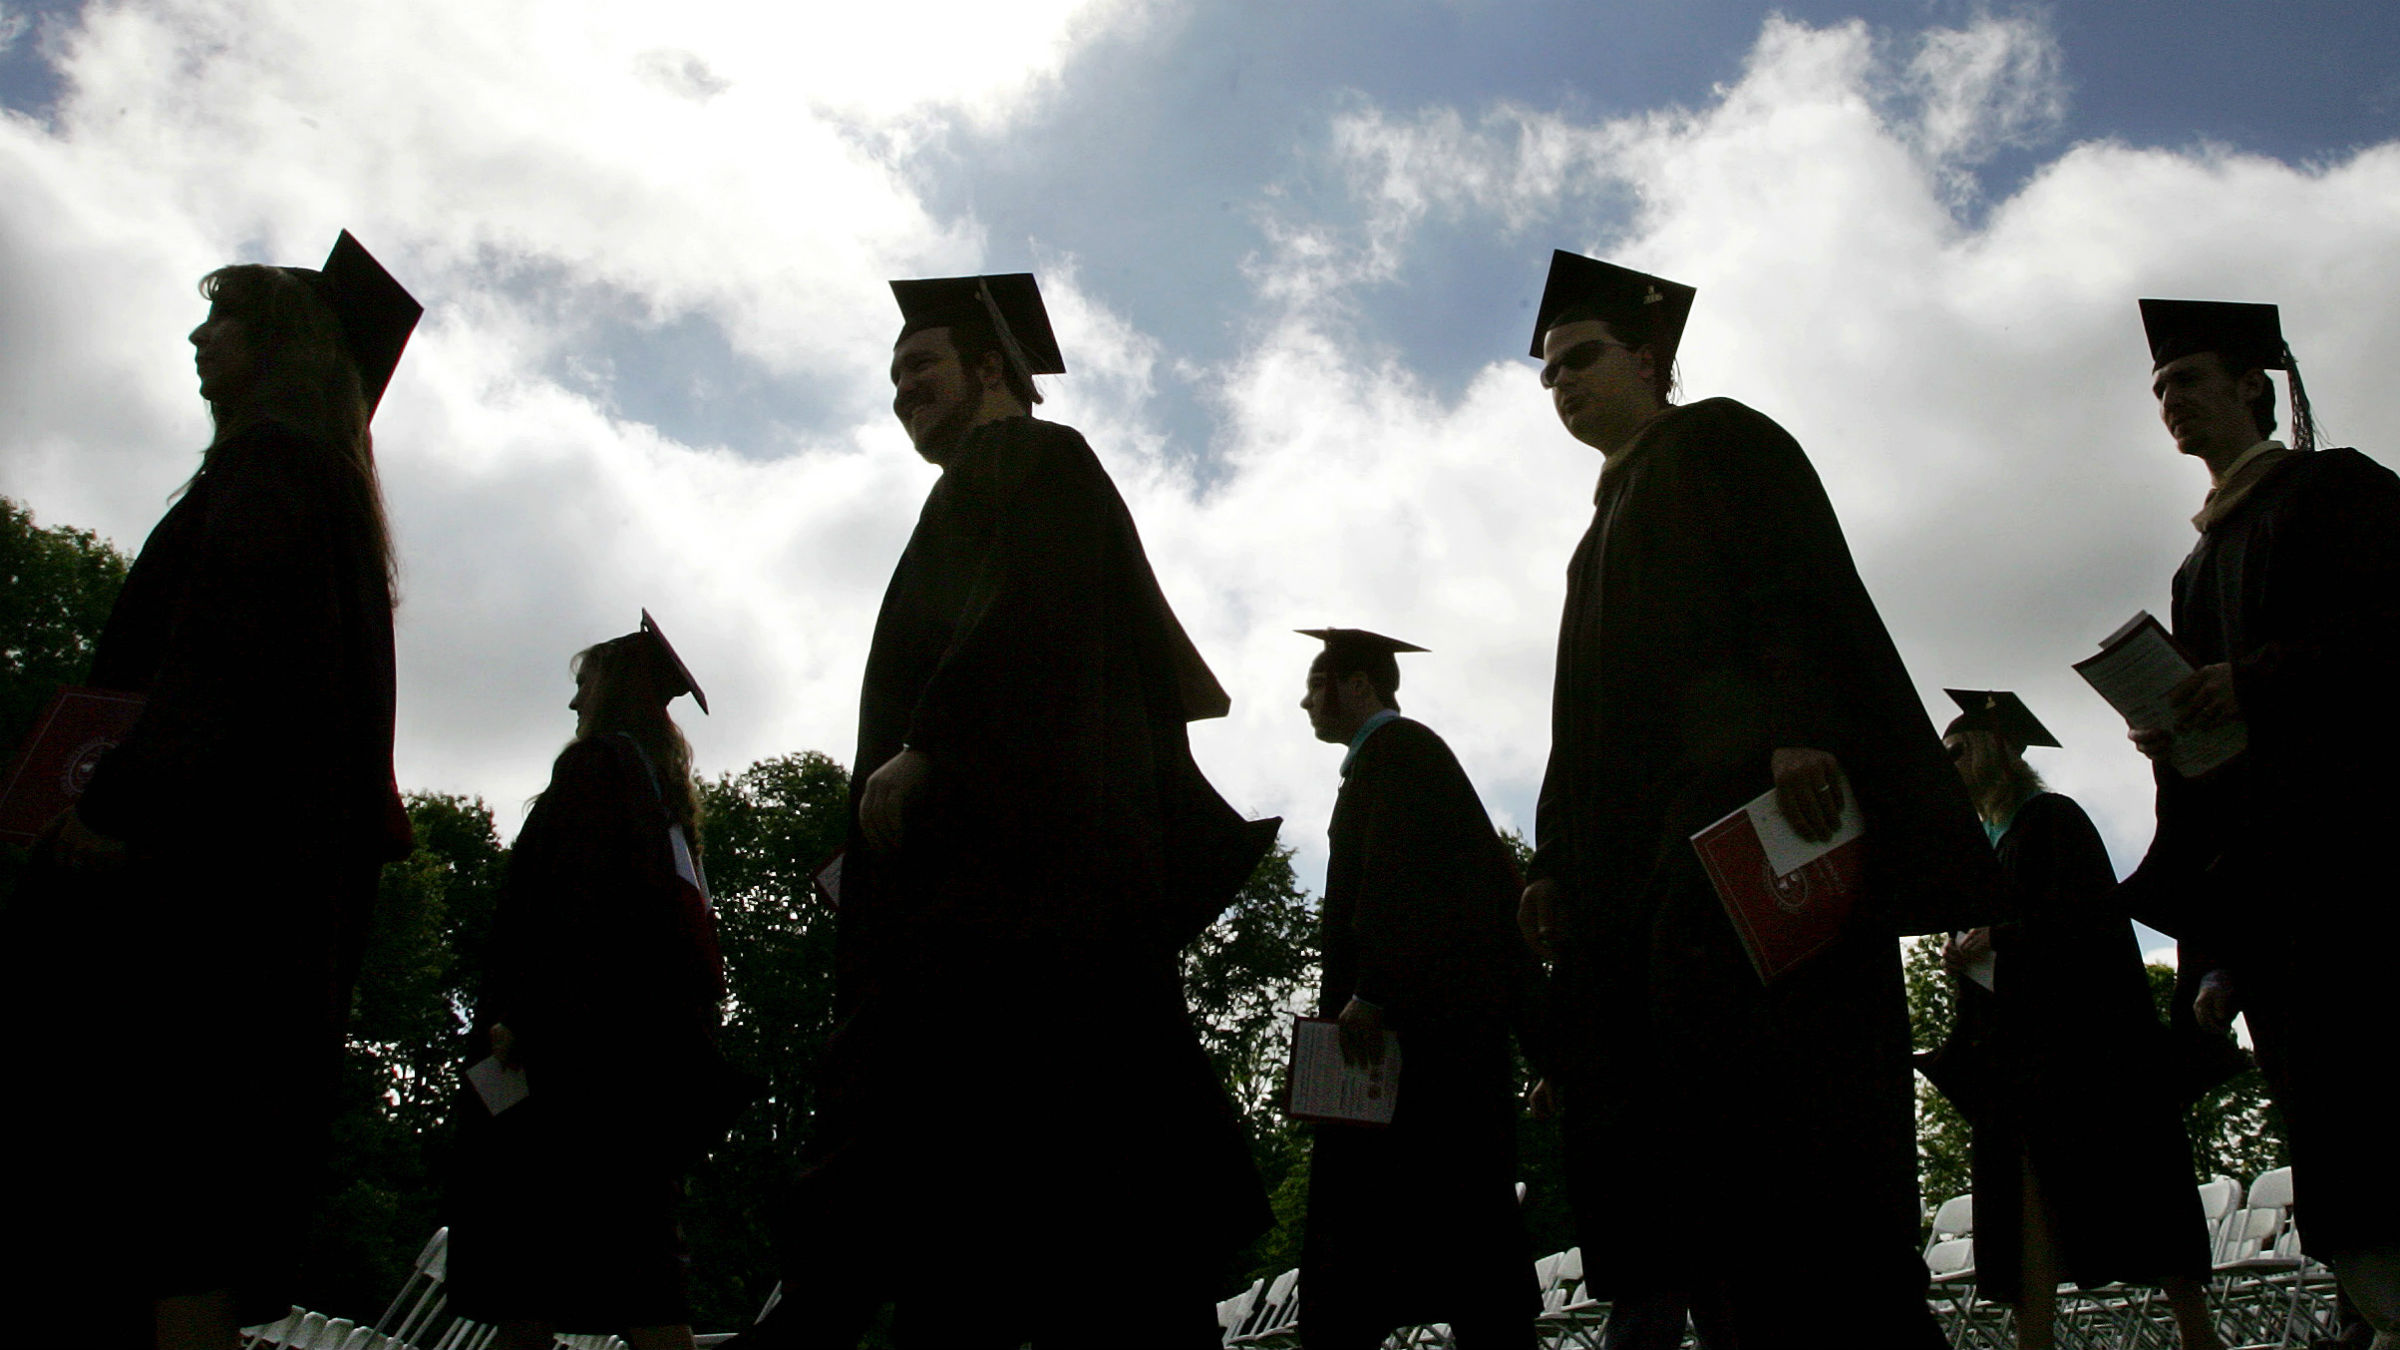 Rider University students in their caps and gowns are silhouetted as they line up for graduation ceremonies Friday, May 12, 2006, in Lawrenceville, N.J.. New York Yankees manager Joseph P. Torre and wife Alice W. Torre received honorary degrees from the school.